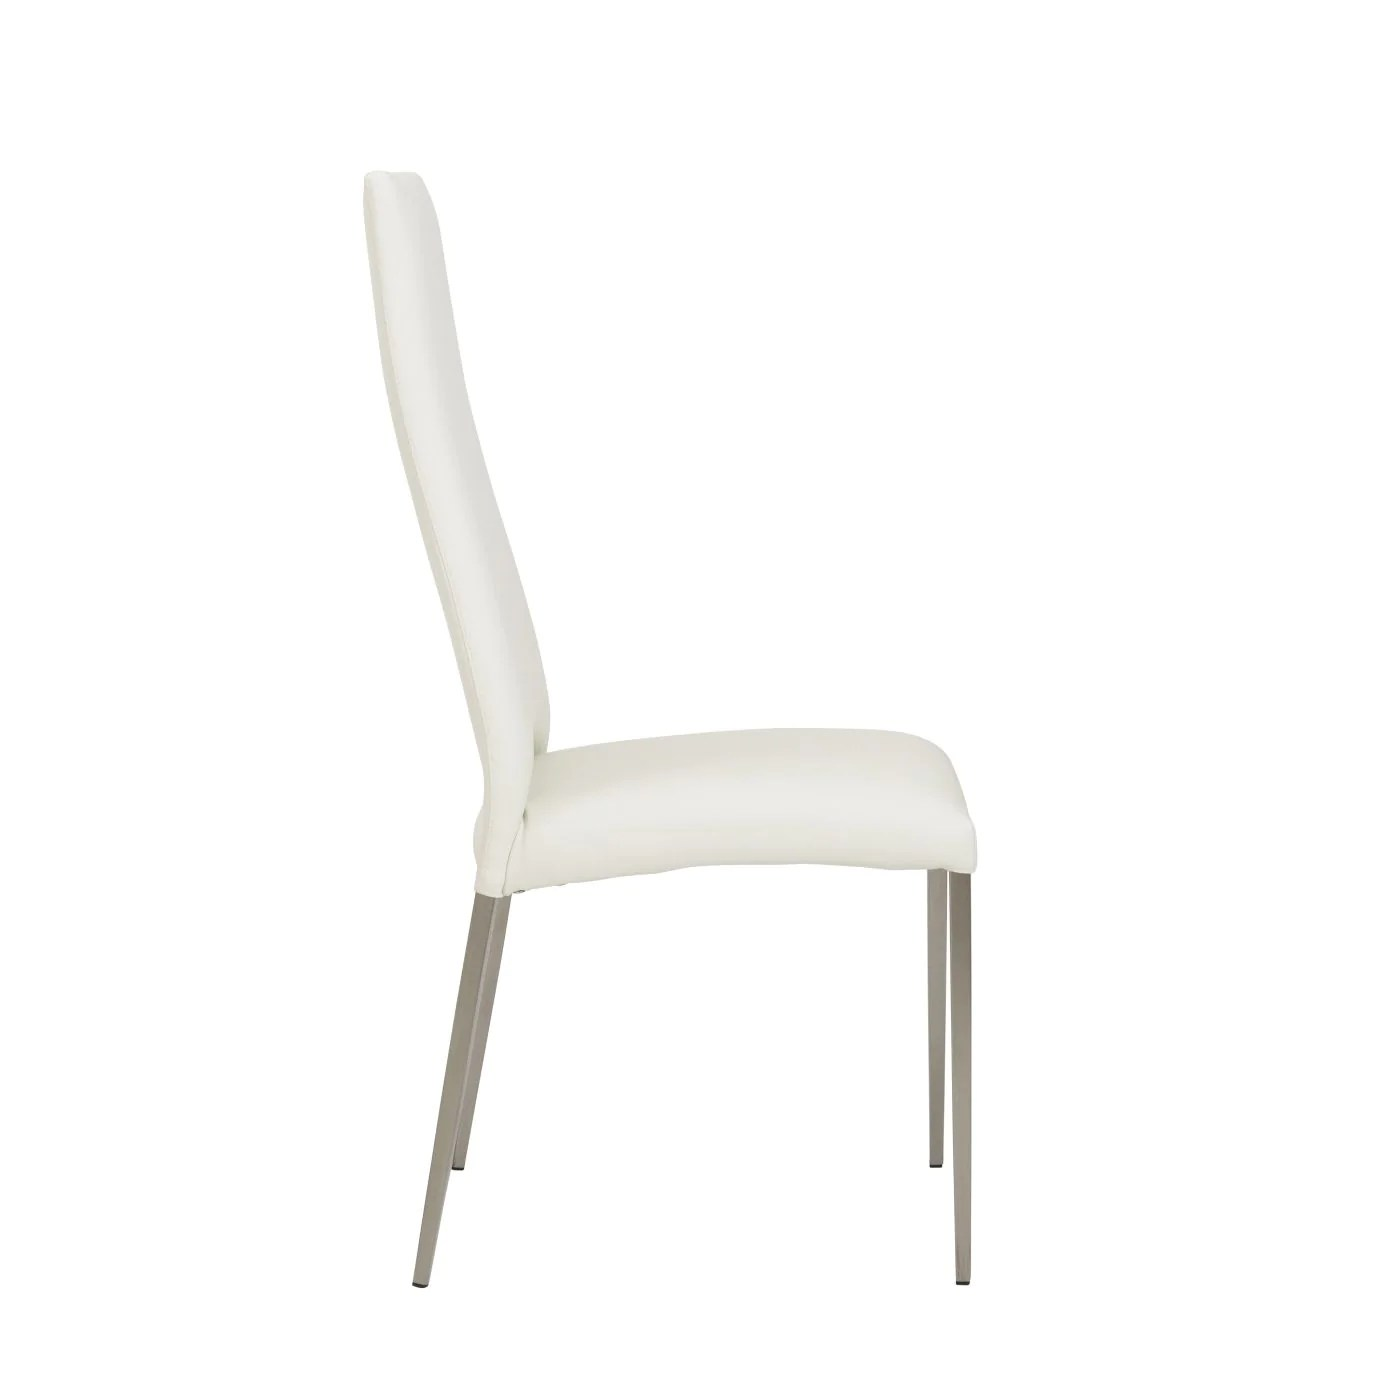 dining chairs with stainless steel legs pink sashes for euro style tara chair in white leatherette